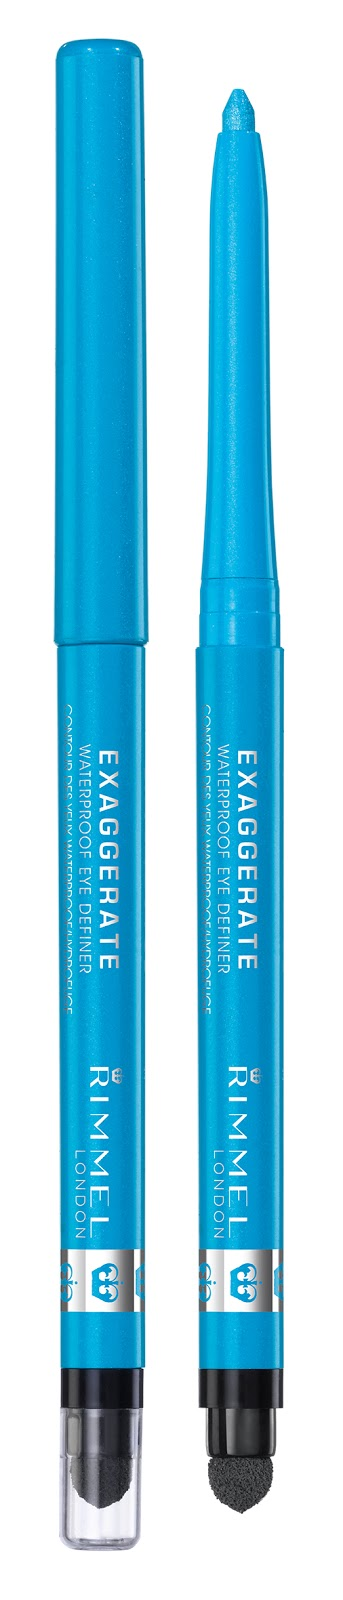 Preview: Nuove Exxagerate Waterproof - Rimmel London